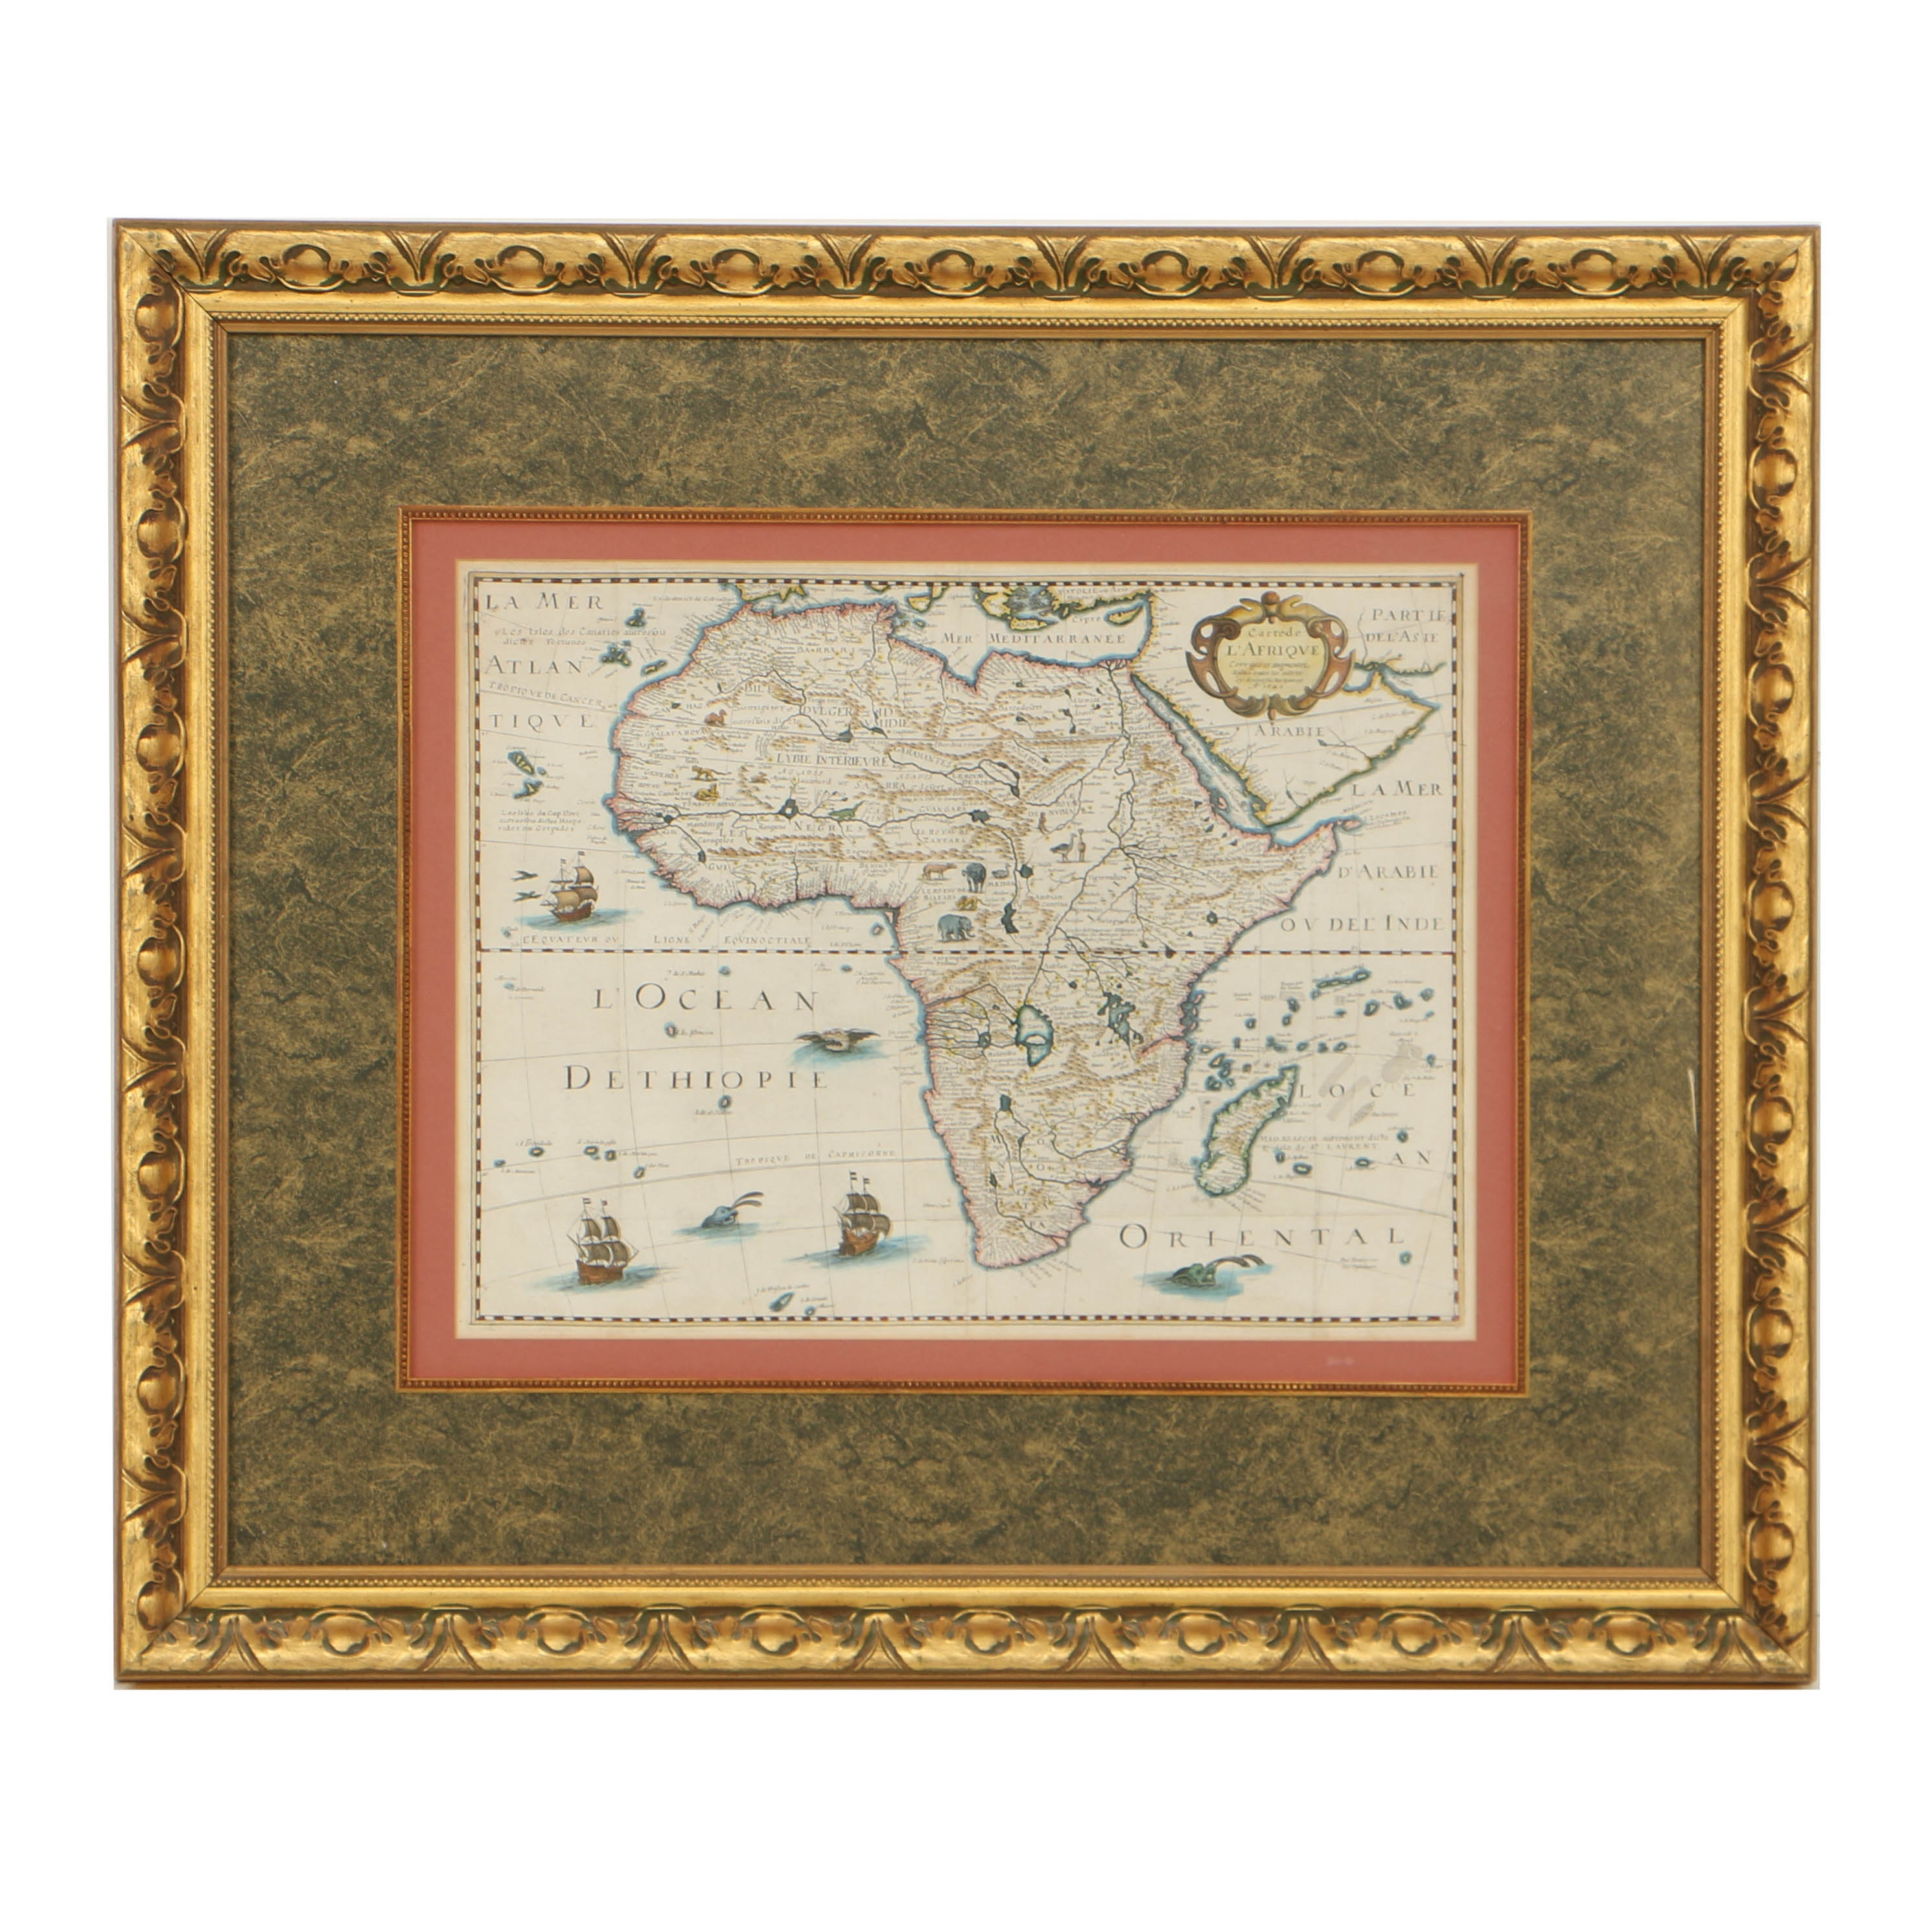 Antique French Hand-Colored Map of Africa after Petrus Bertius